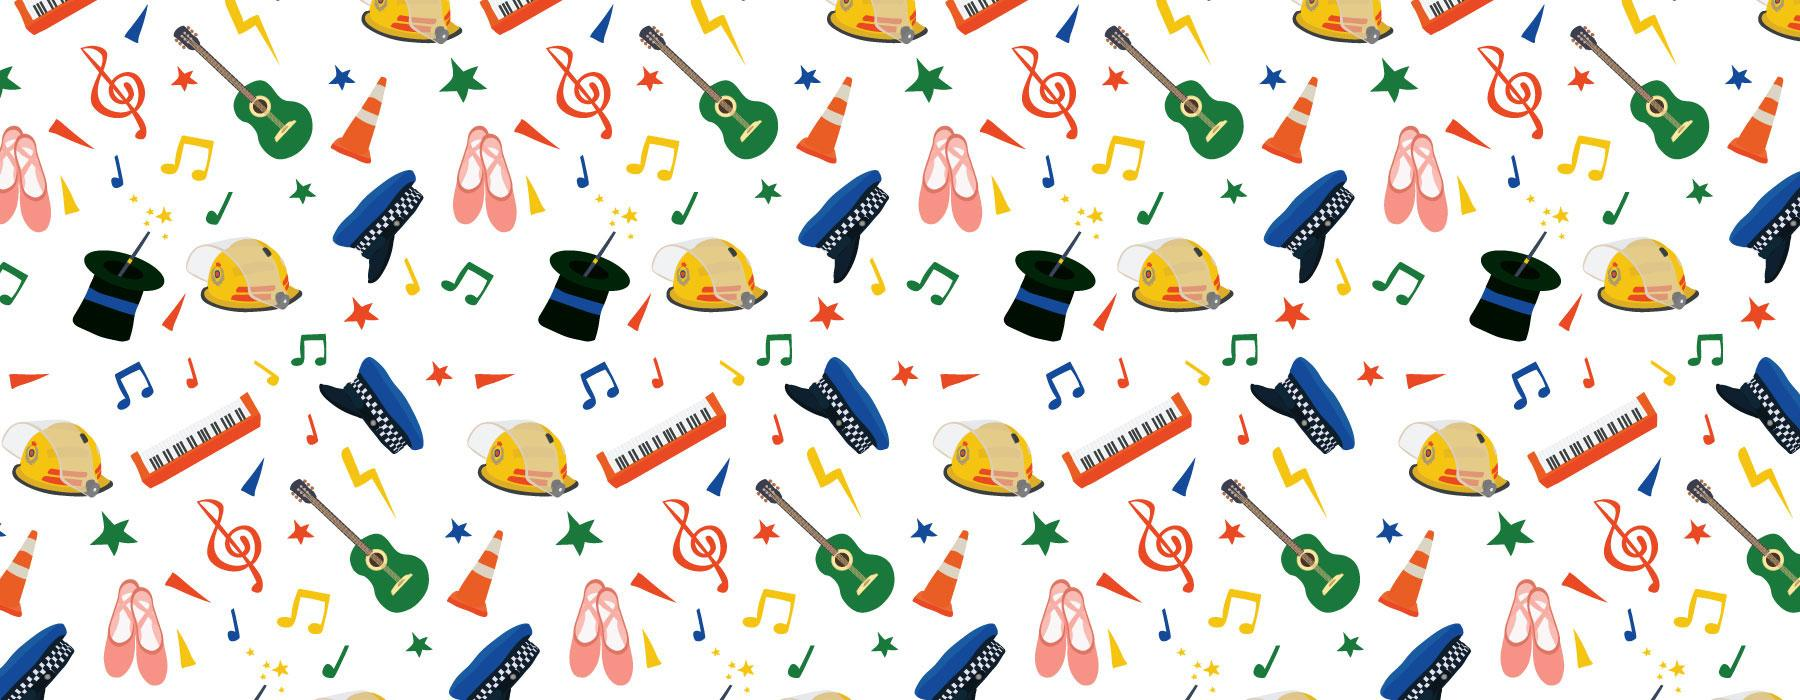 A fun design including guitars, ballet shoes, fireman and police hats